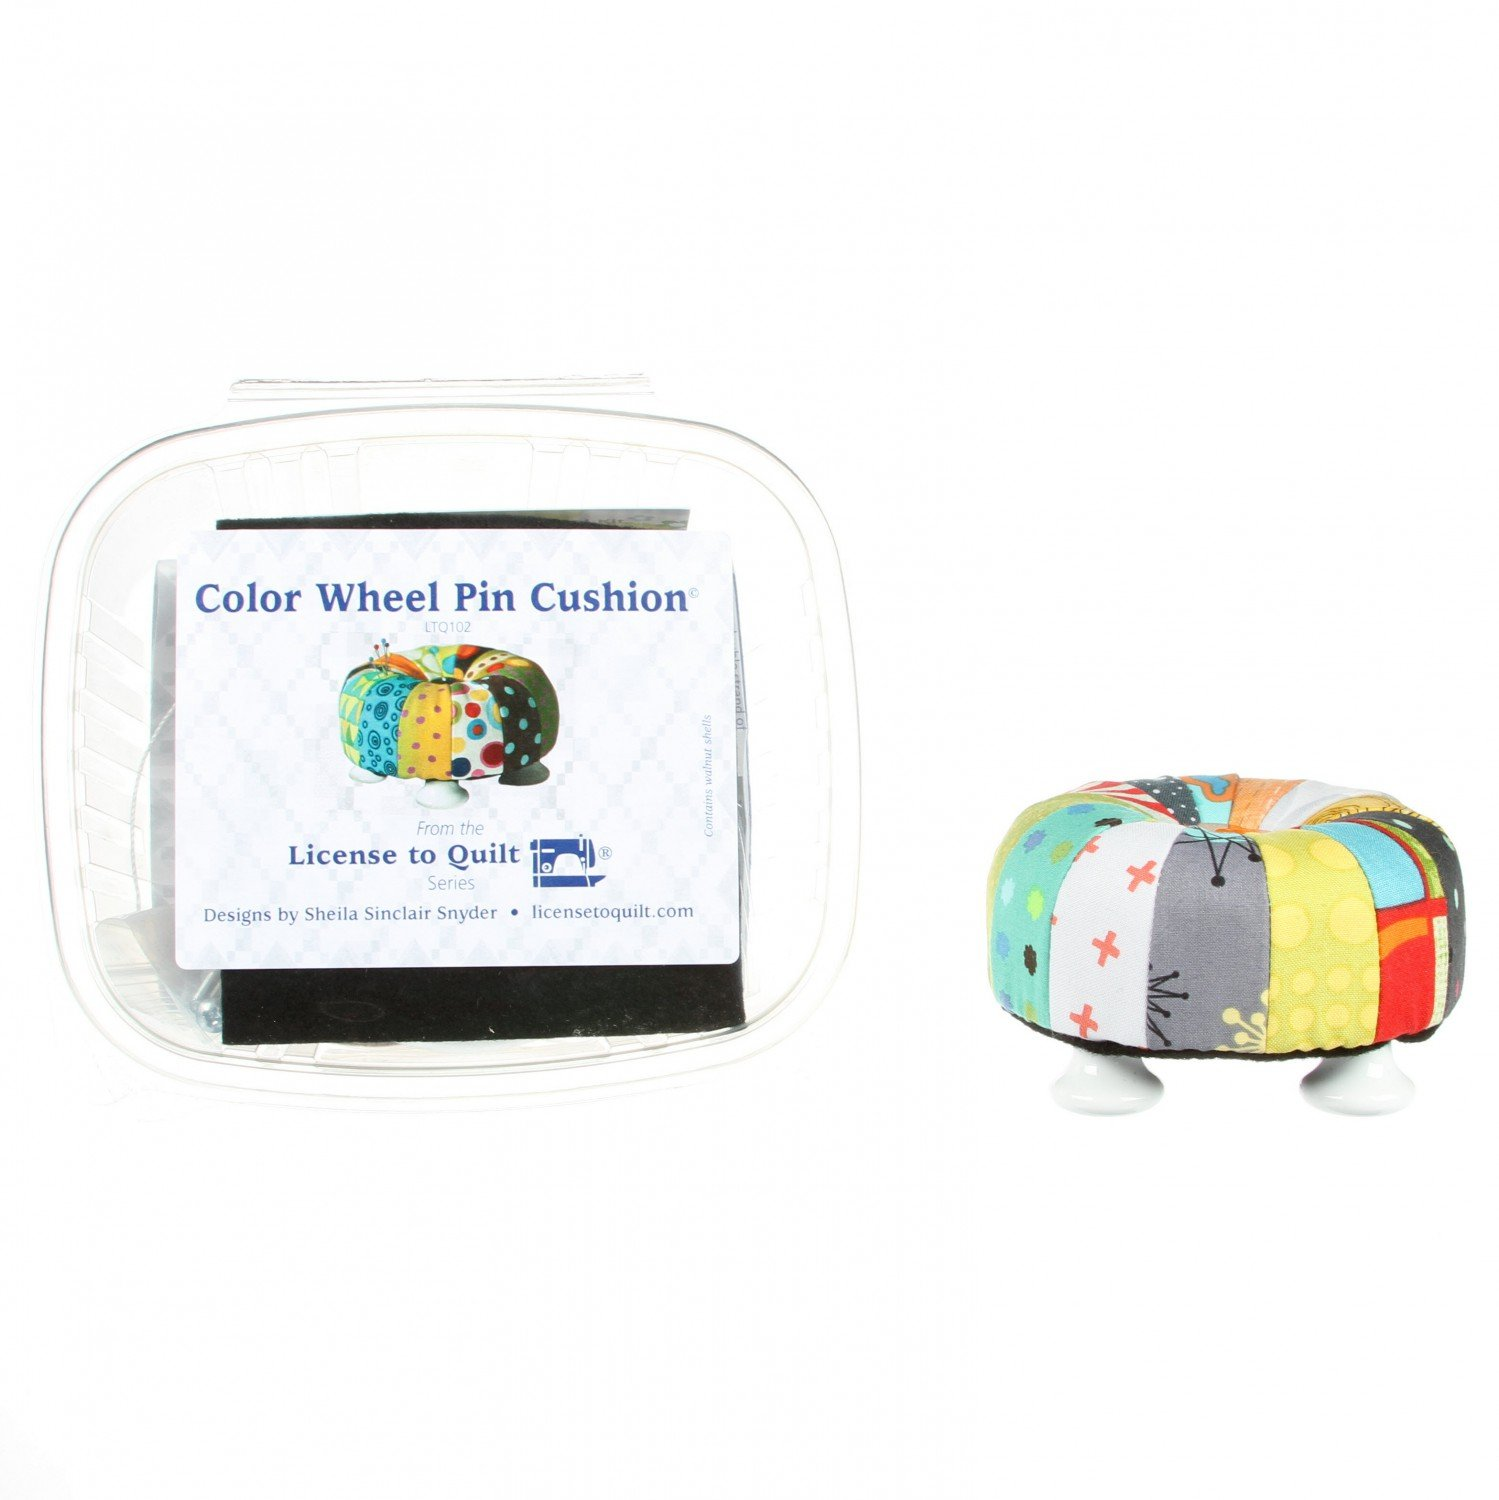 Color Wheel Tuffet Pin Cushion Kit - LTQ102